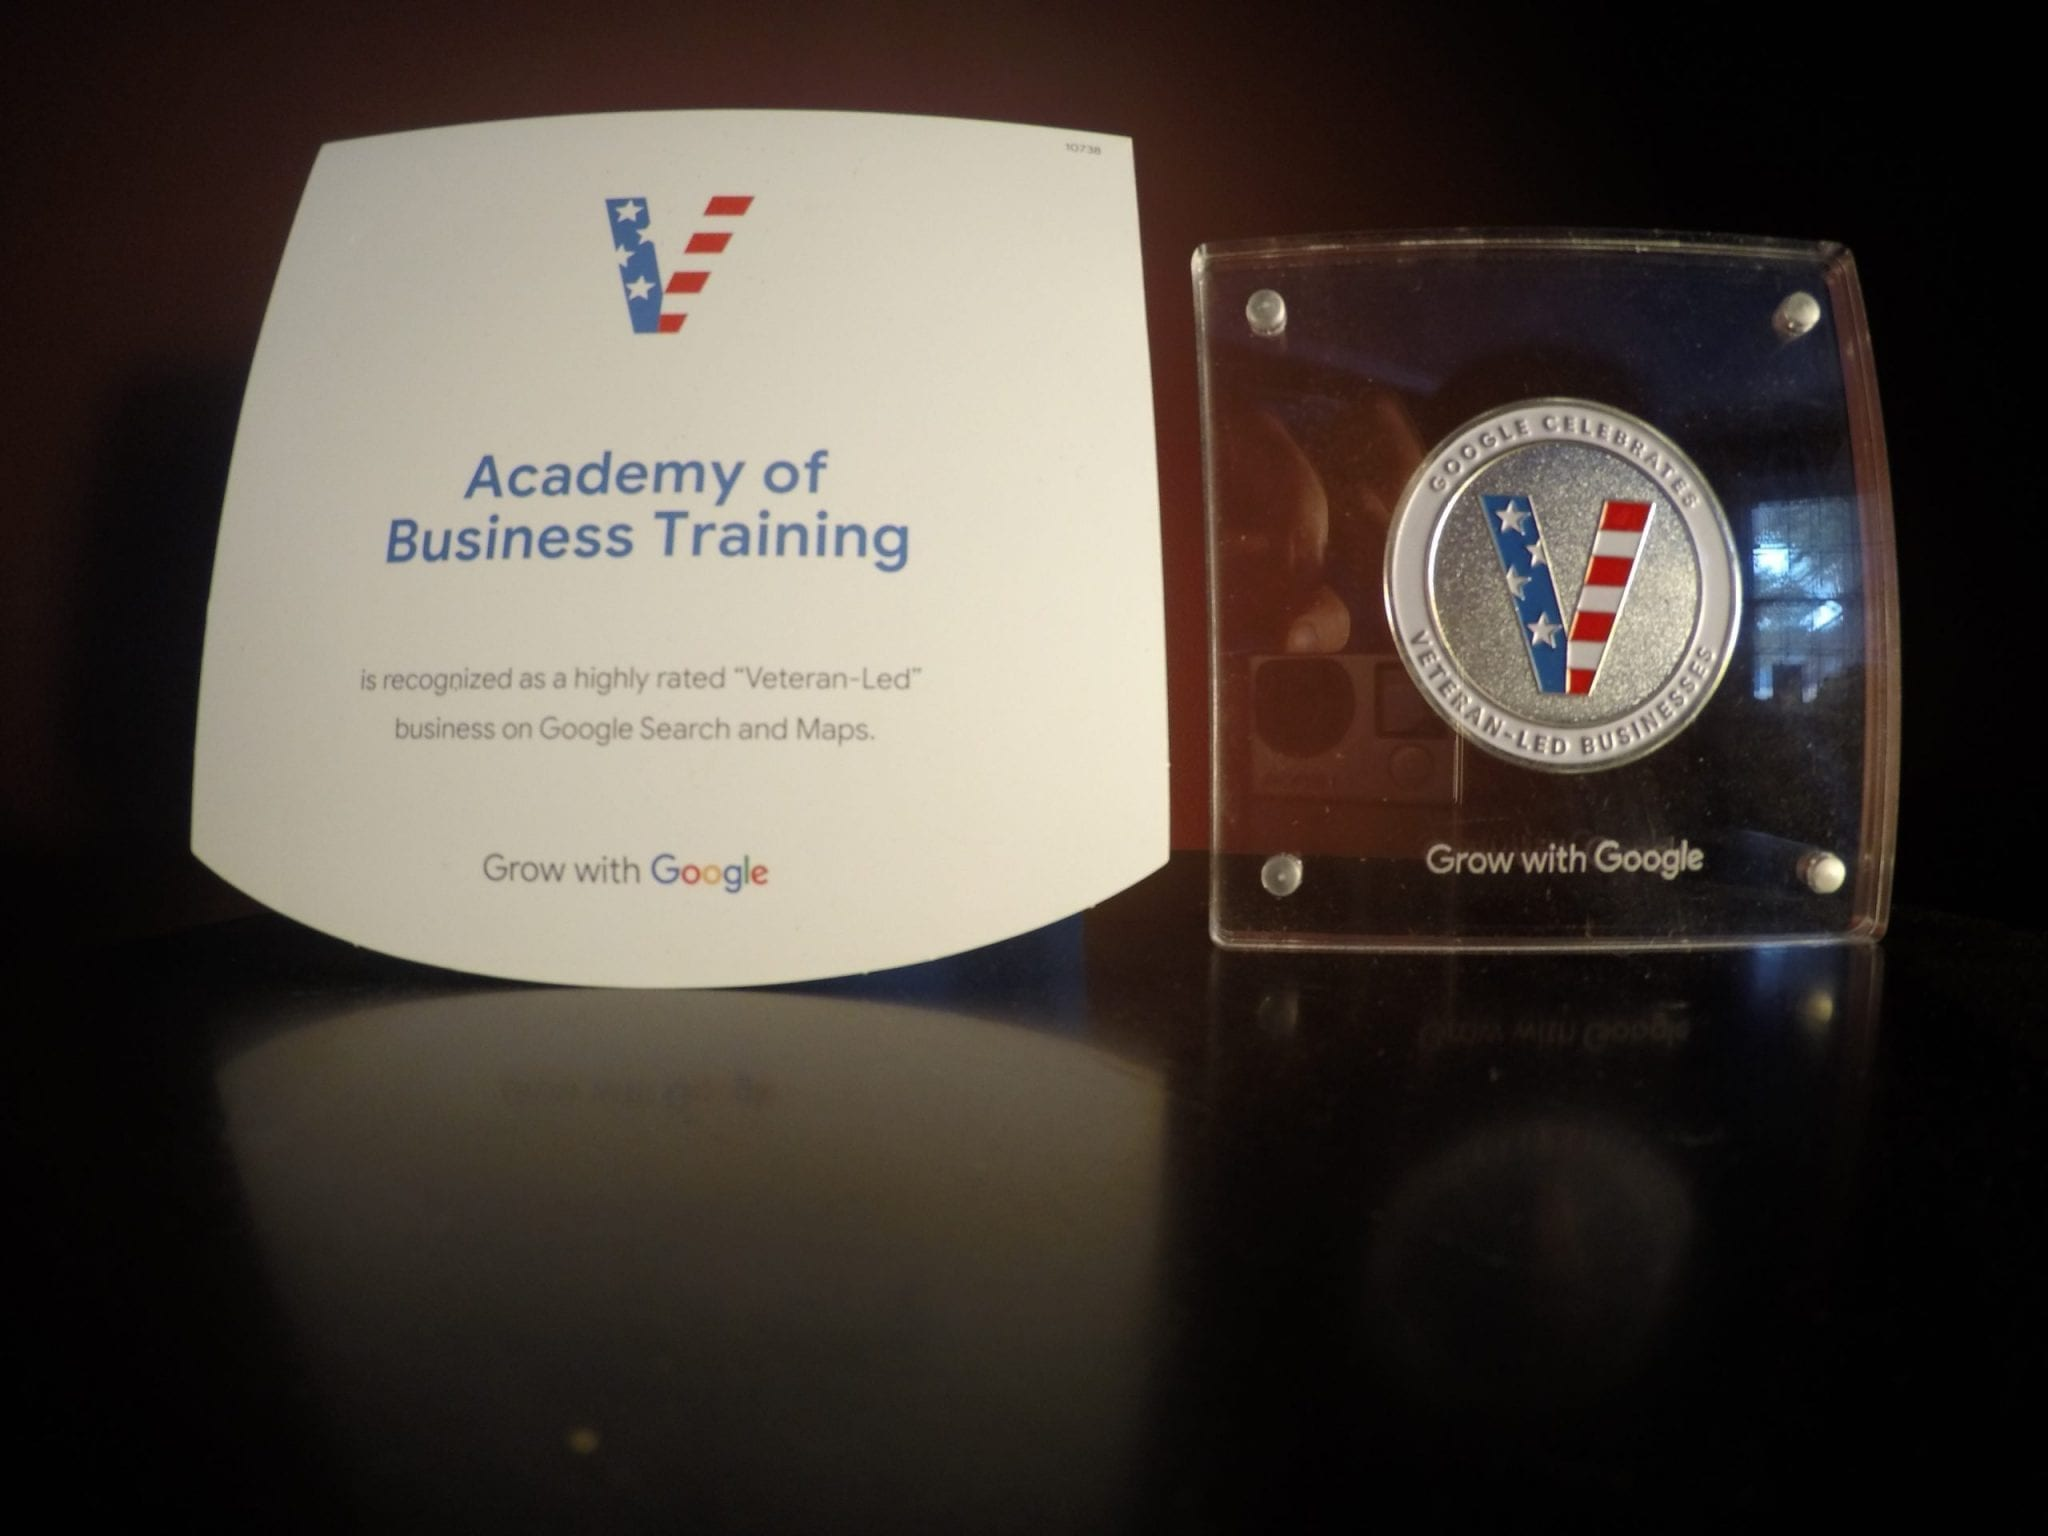 Google Recognizes the Academy of Business Training as a Highly Rated Veteran Led Business